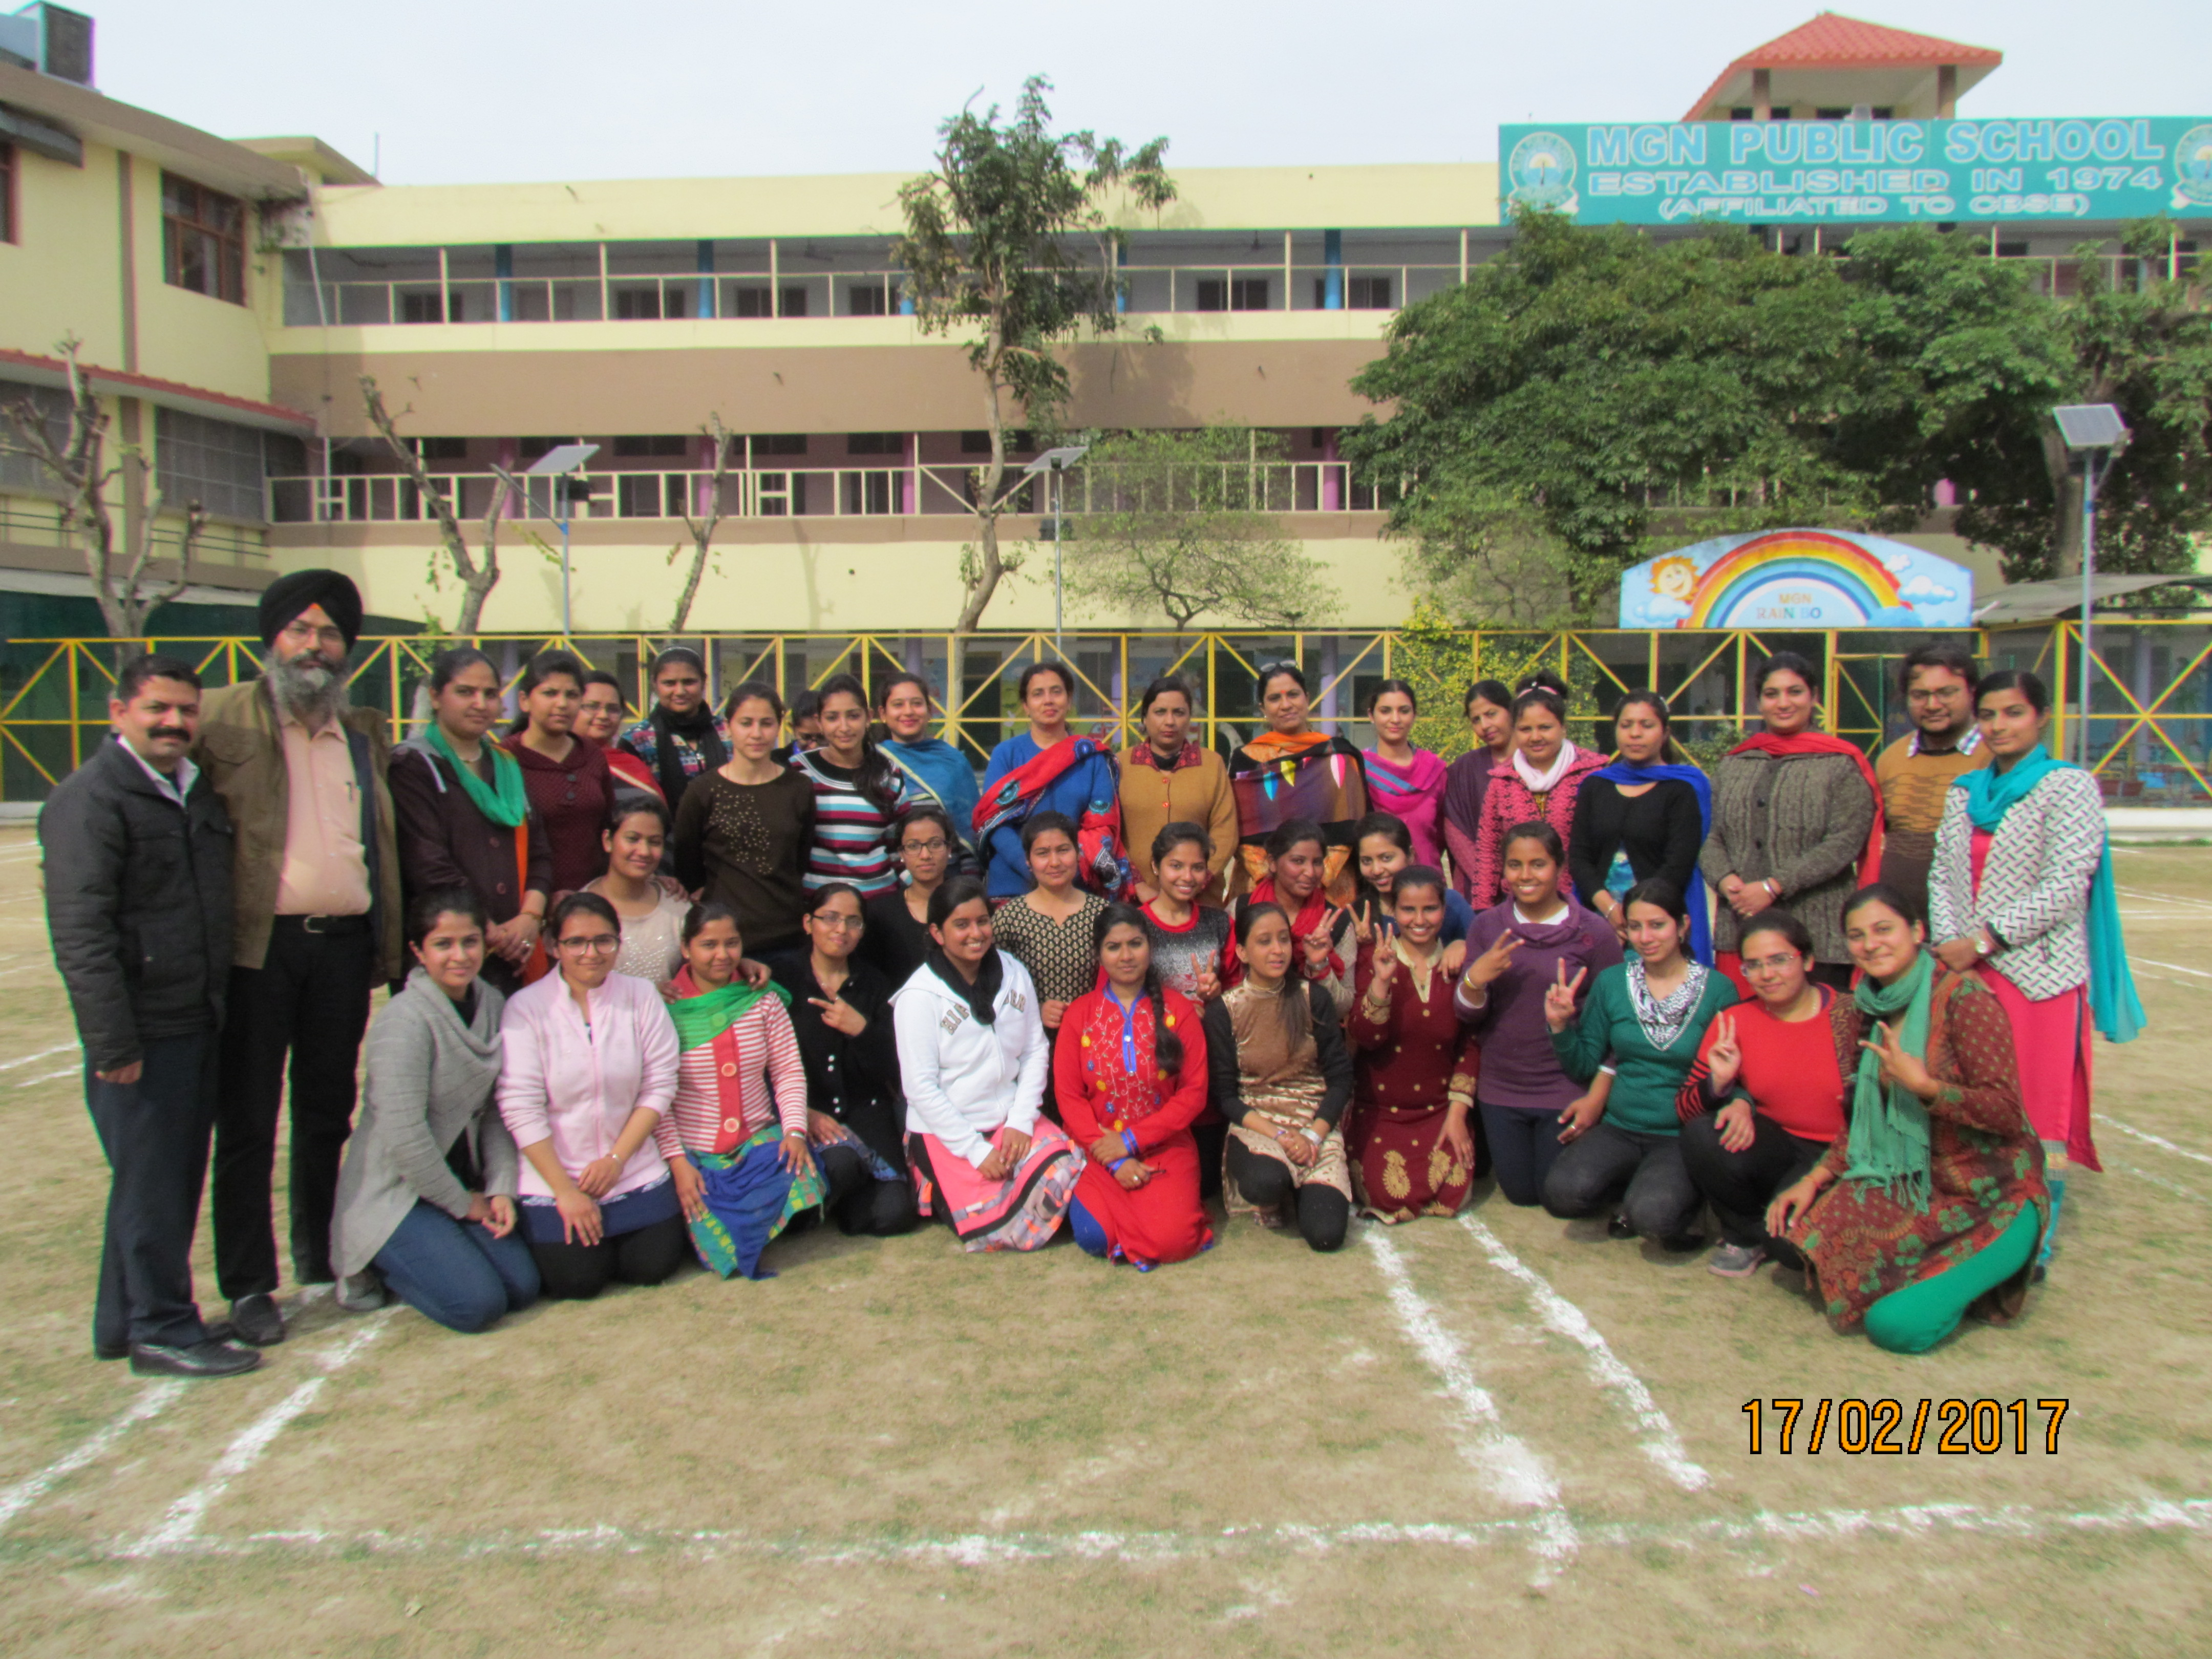 Kho-Kho Competitions at M.G.N. College of Education